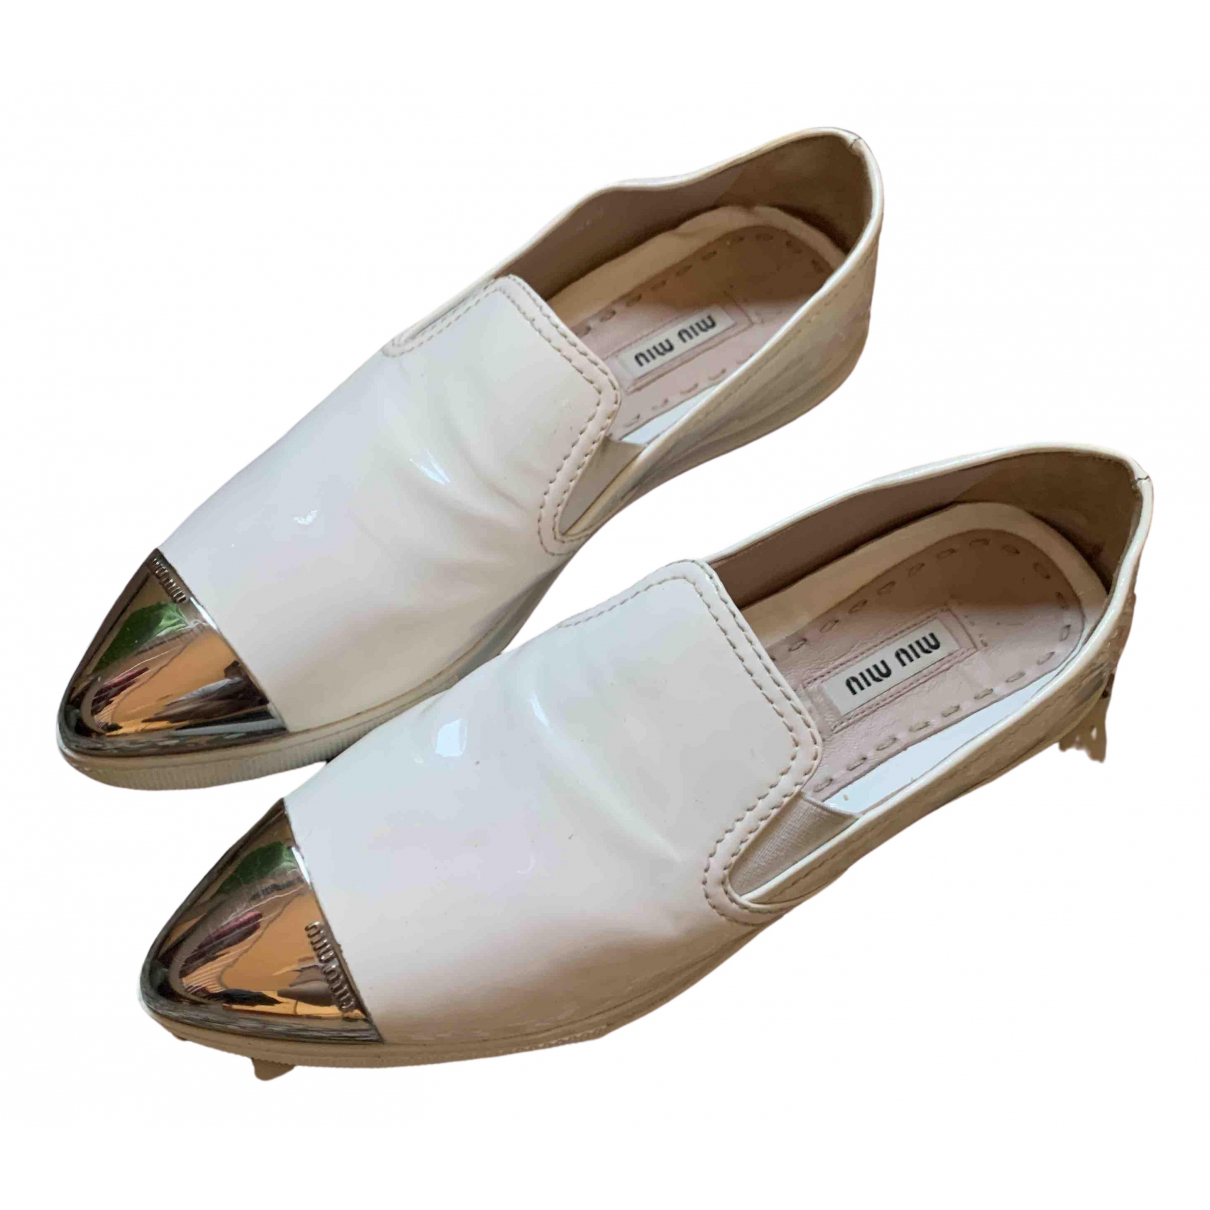 Miu Miu \N White Patent leather Trainers for Women 36 EU